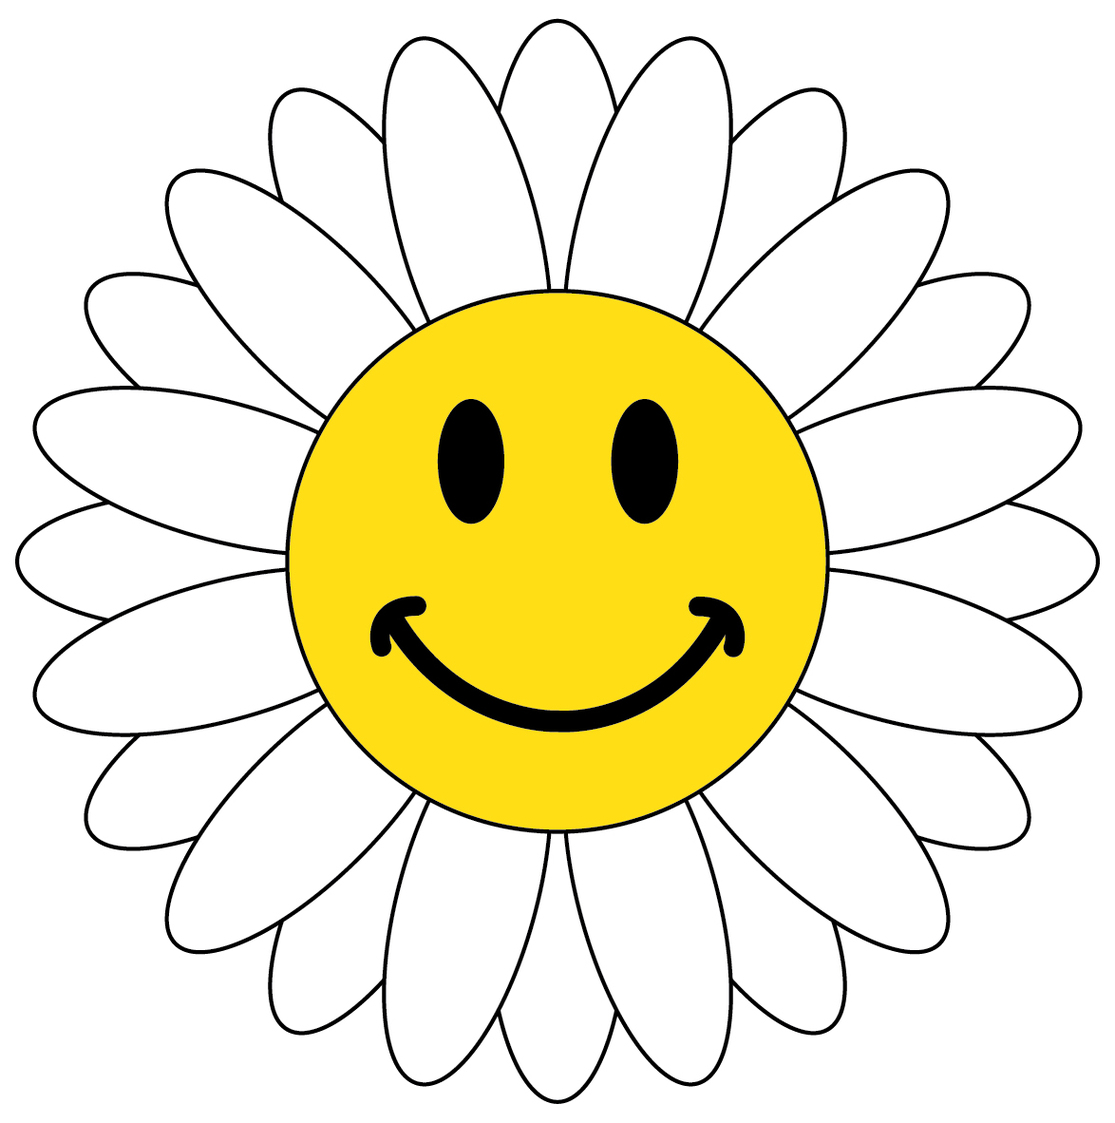 Really Happy Face Clipart - Free to use Clip Art Resource ...